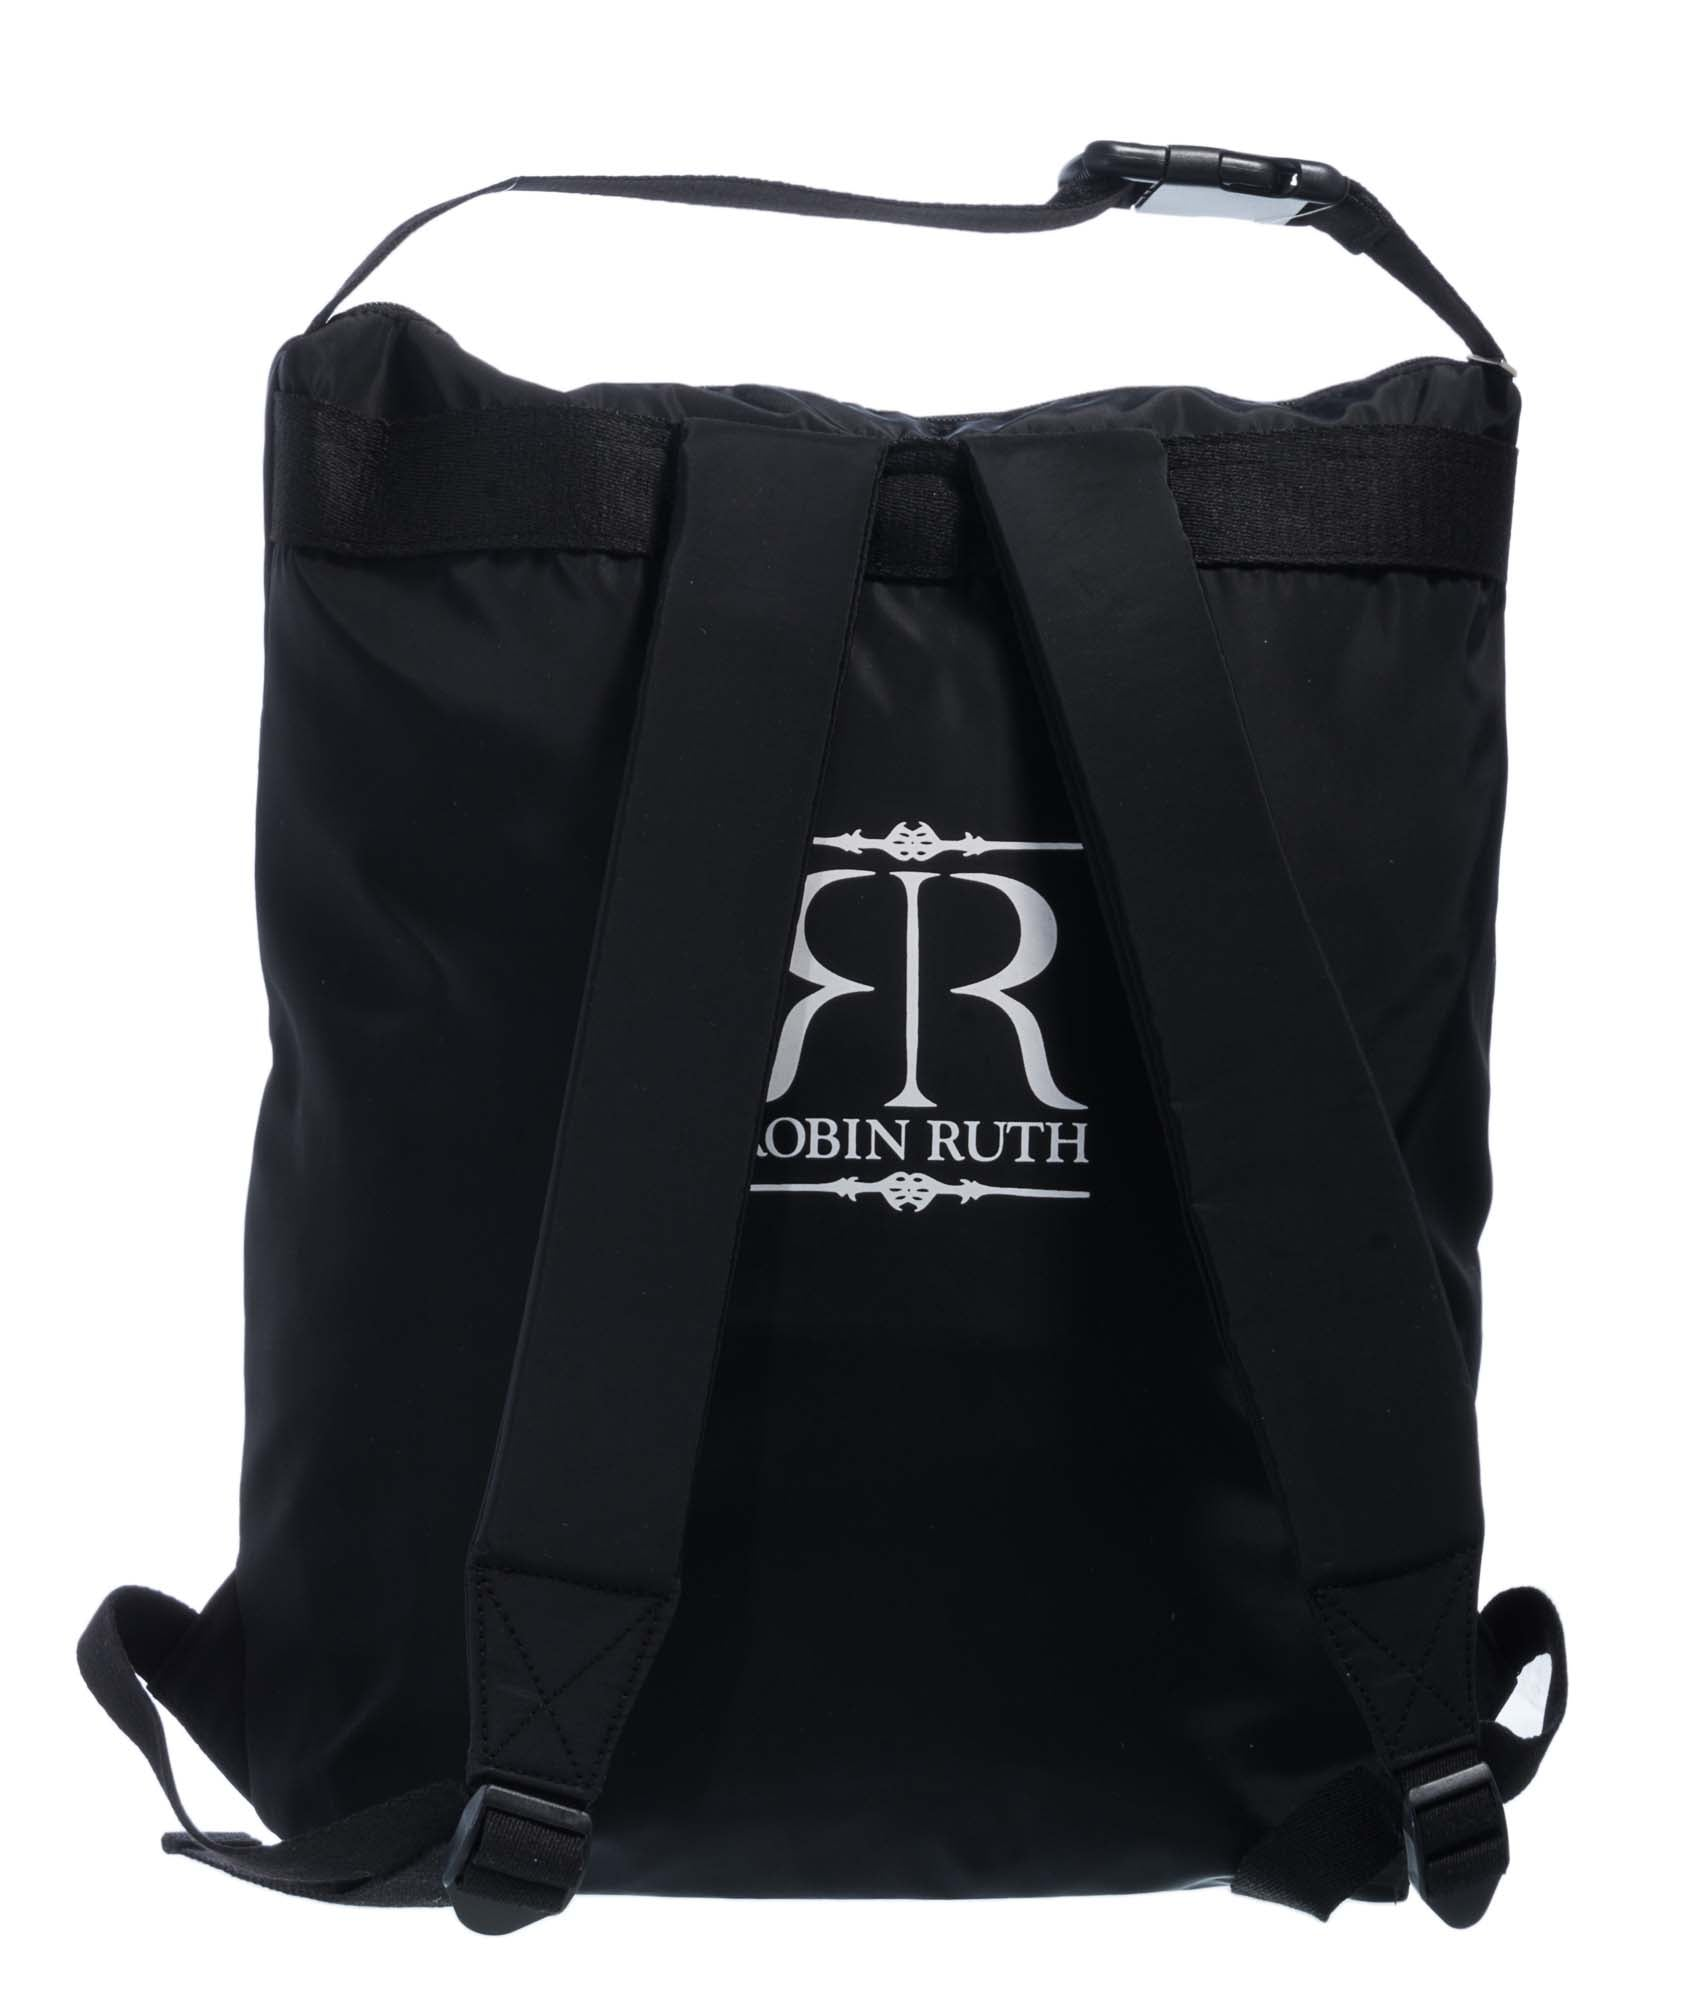 Ireland Sports bag, backpack, black/white Ireland logo